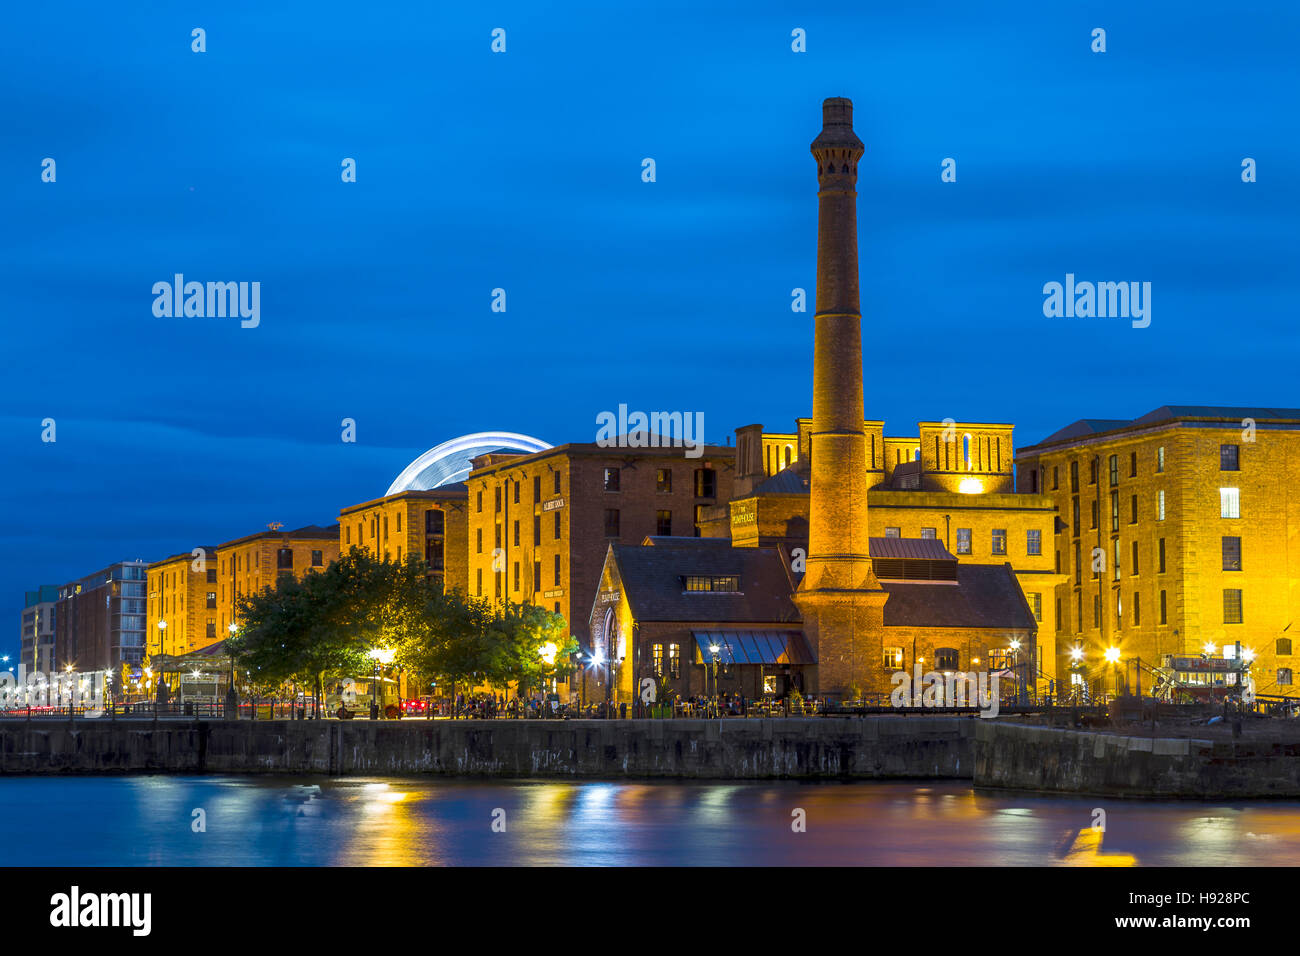 The Albert Dock during the blue hour in Liverpool. - Stock Image